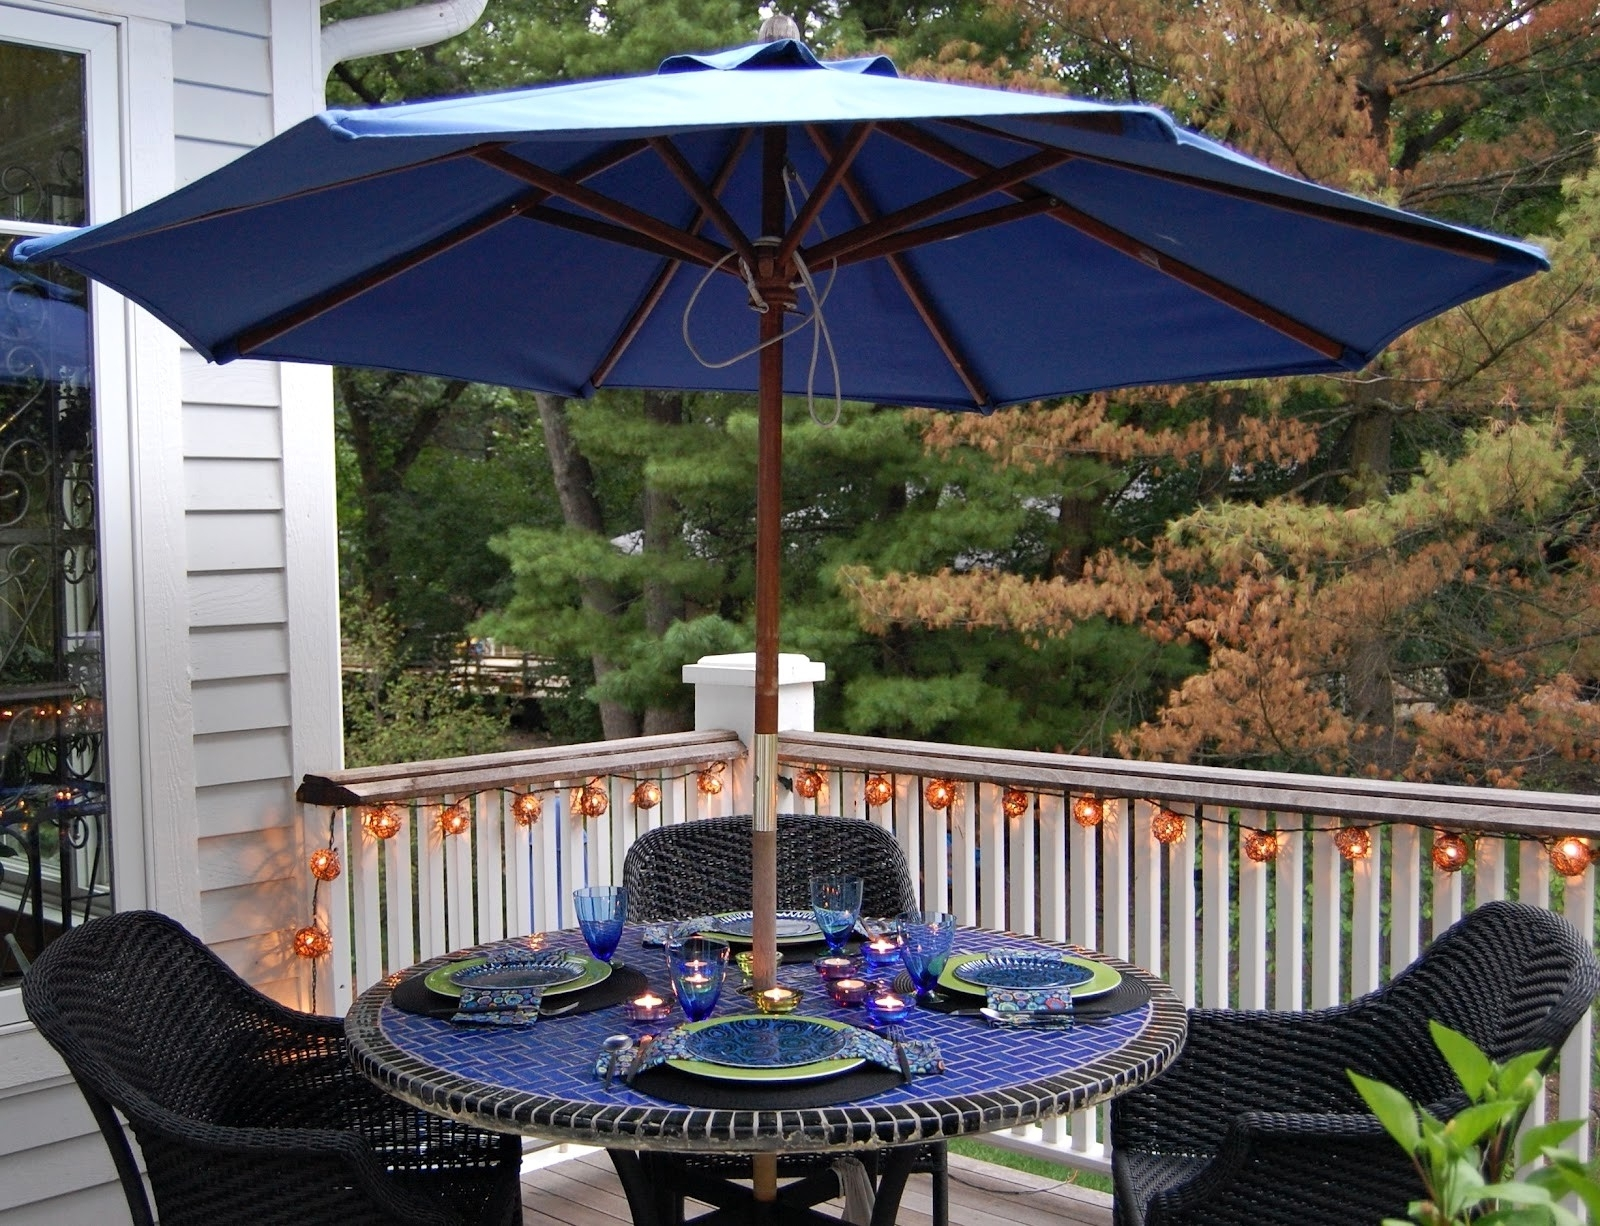 Free Standing Umbrellas For Patio With Well Known Patio Furniture Sets With Umbrella Treasure Garden Outdoor Costco (View 8 of 20)